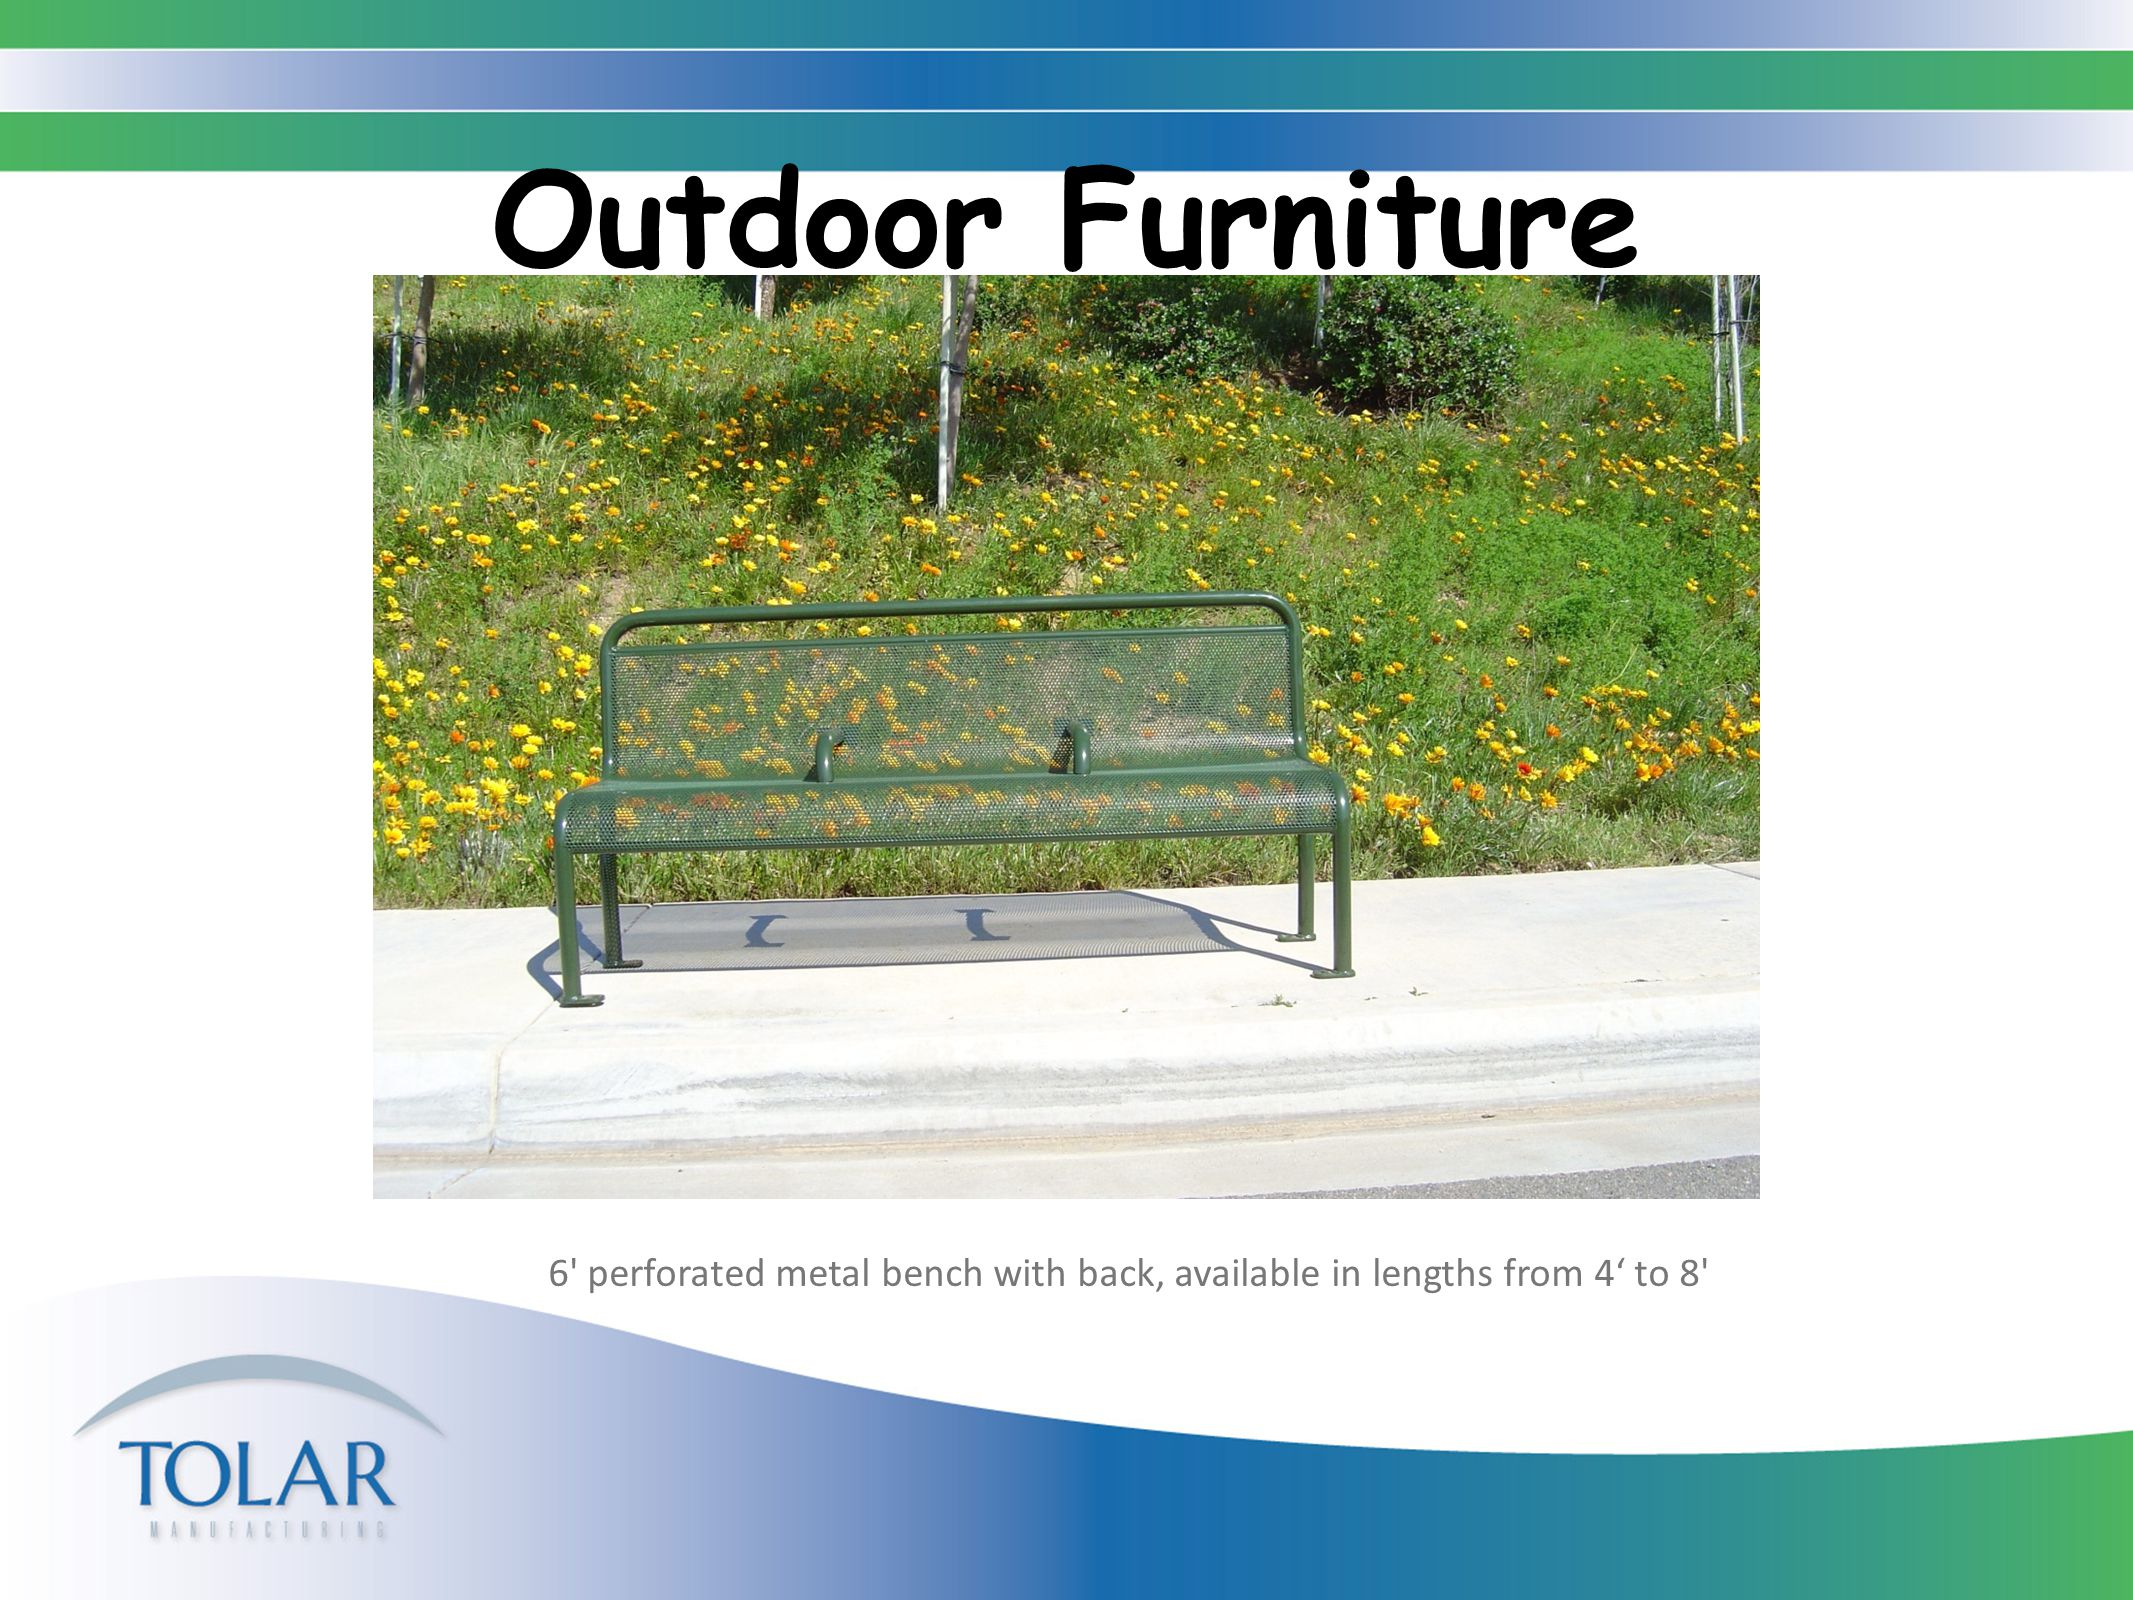 Outdoor Furniture 6 steel strap bench, with back and steel strap trash receptacle, bench available in lengths from 4' to 8